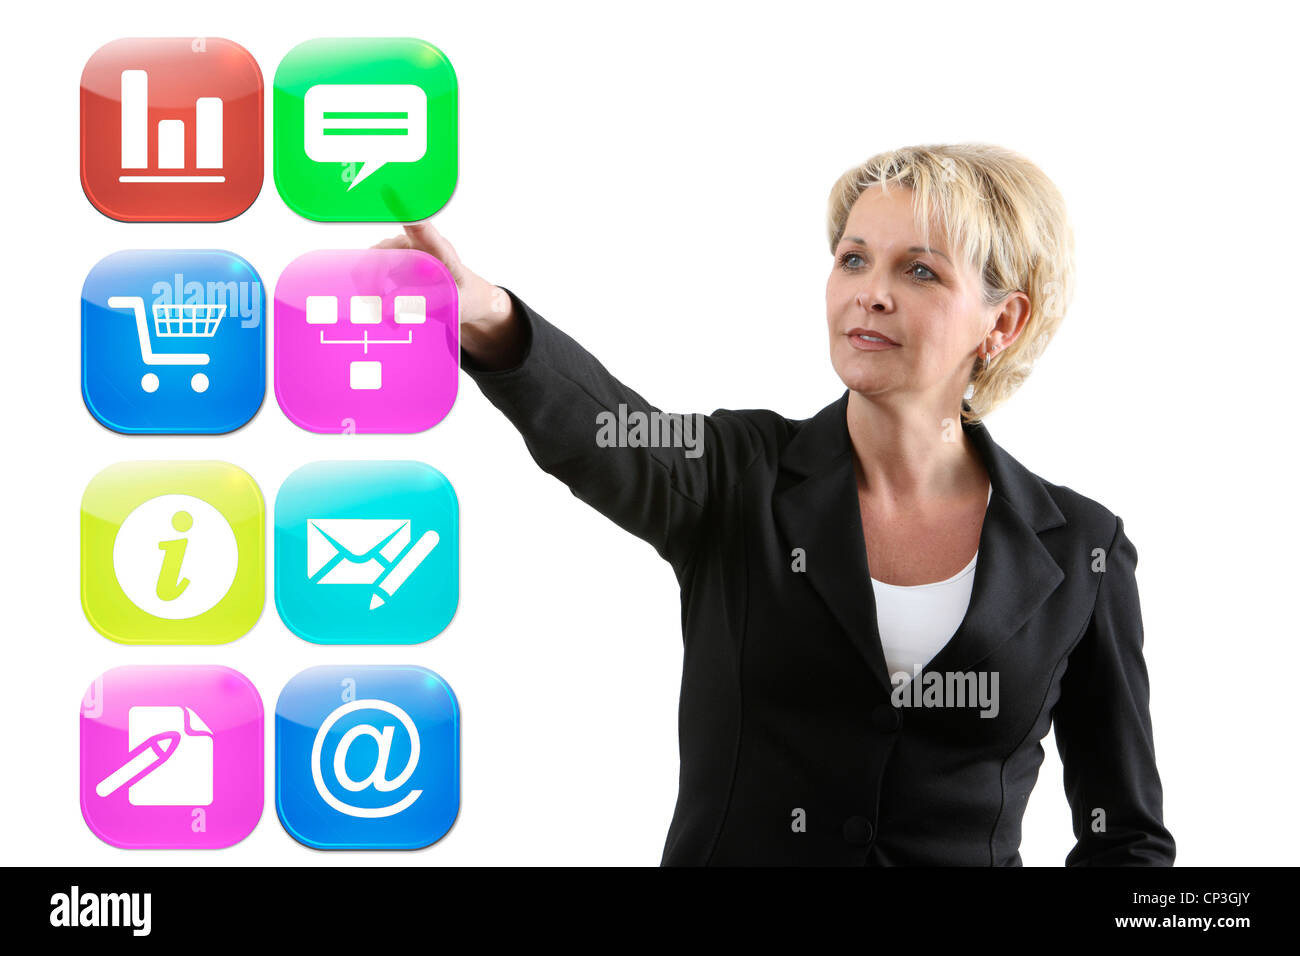 Symbolic image, Icon, virtual work, operate. Icons virtual control computer, communications, Internet, software, - Stock Image